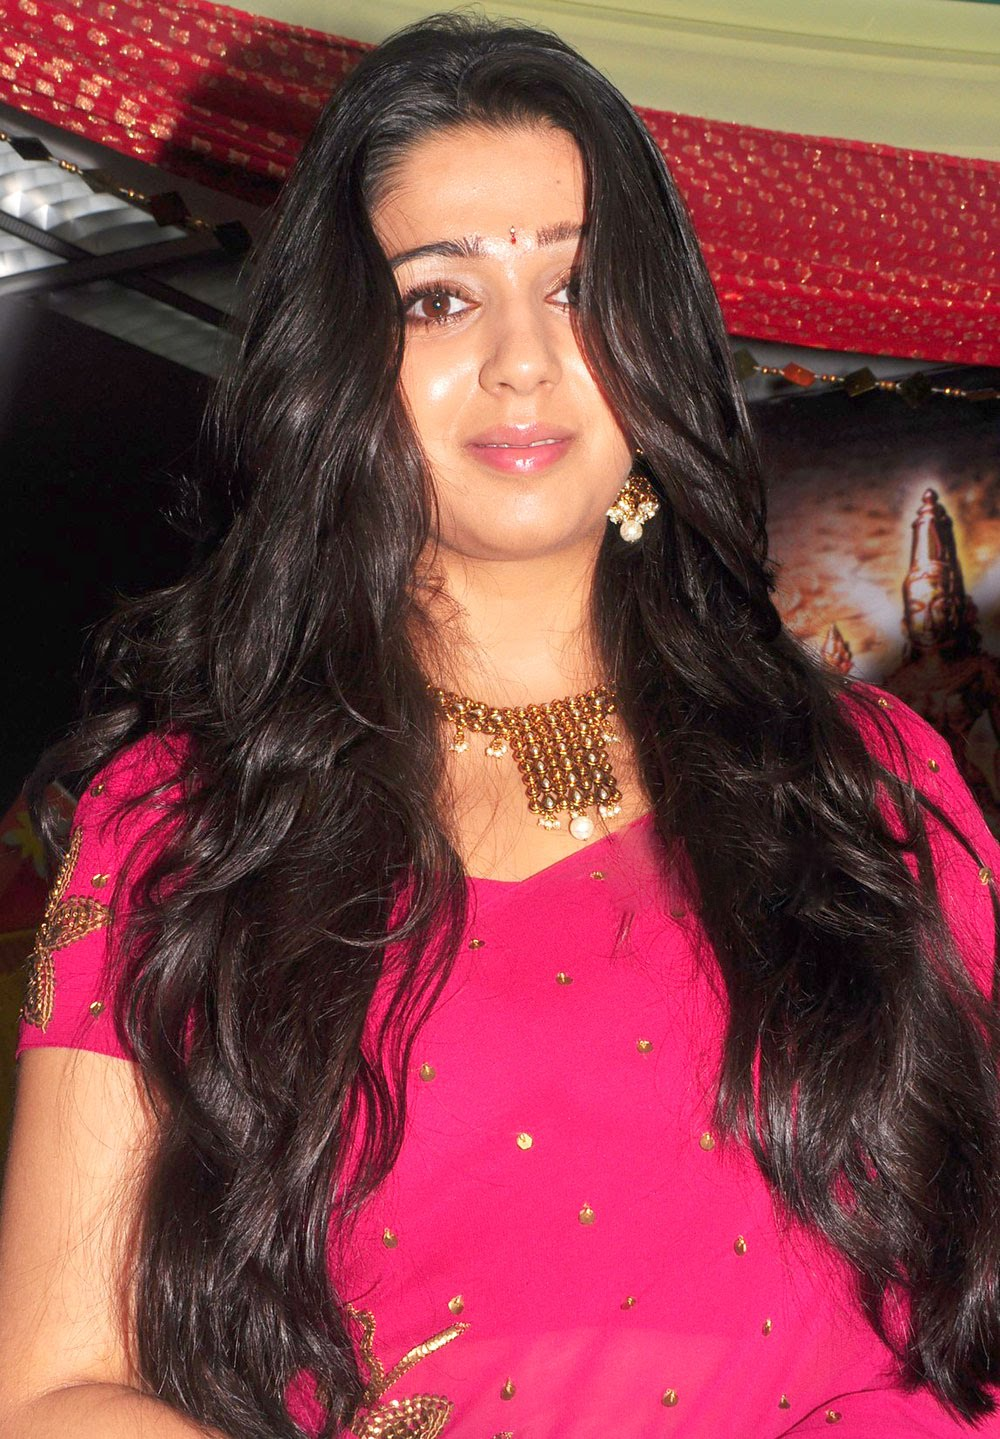 charmme kaur images charmi hd wallpaper and background photos (29423909)